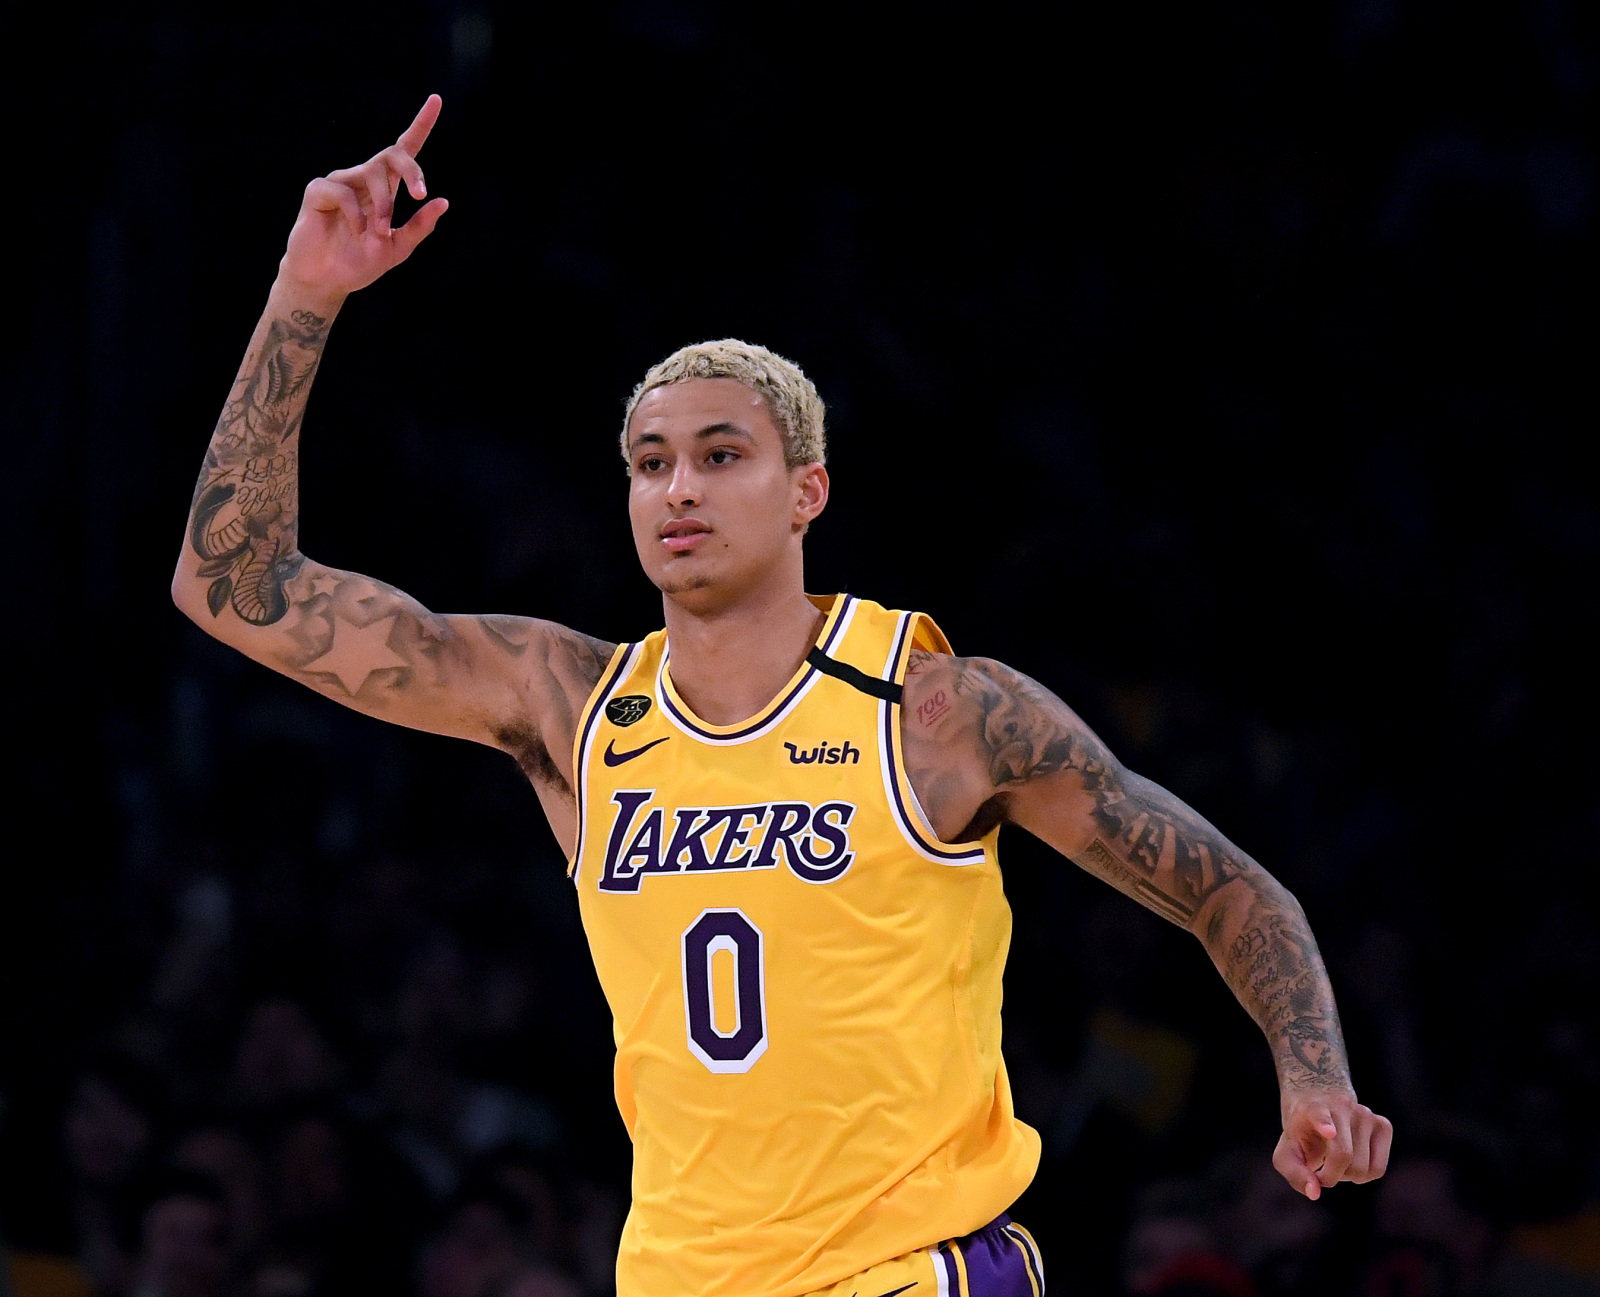 Los Angeles Lakers: Kyle Kuzma named as X-factor for the playoffs